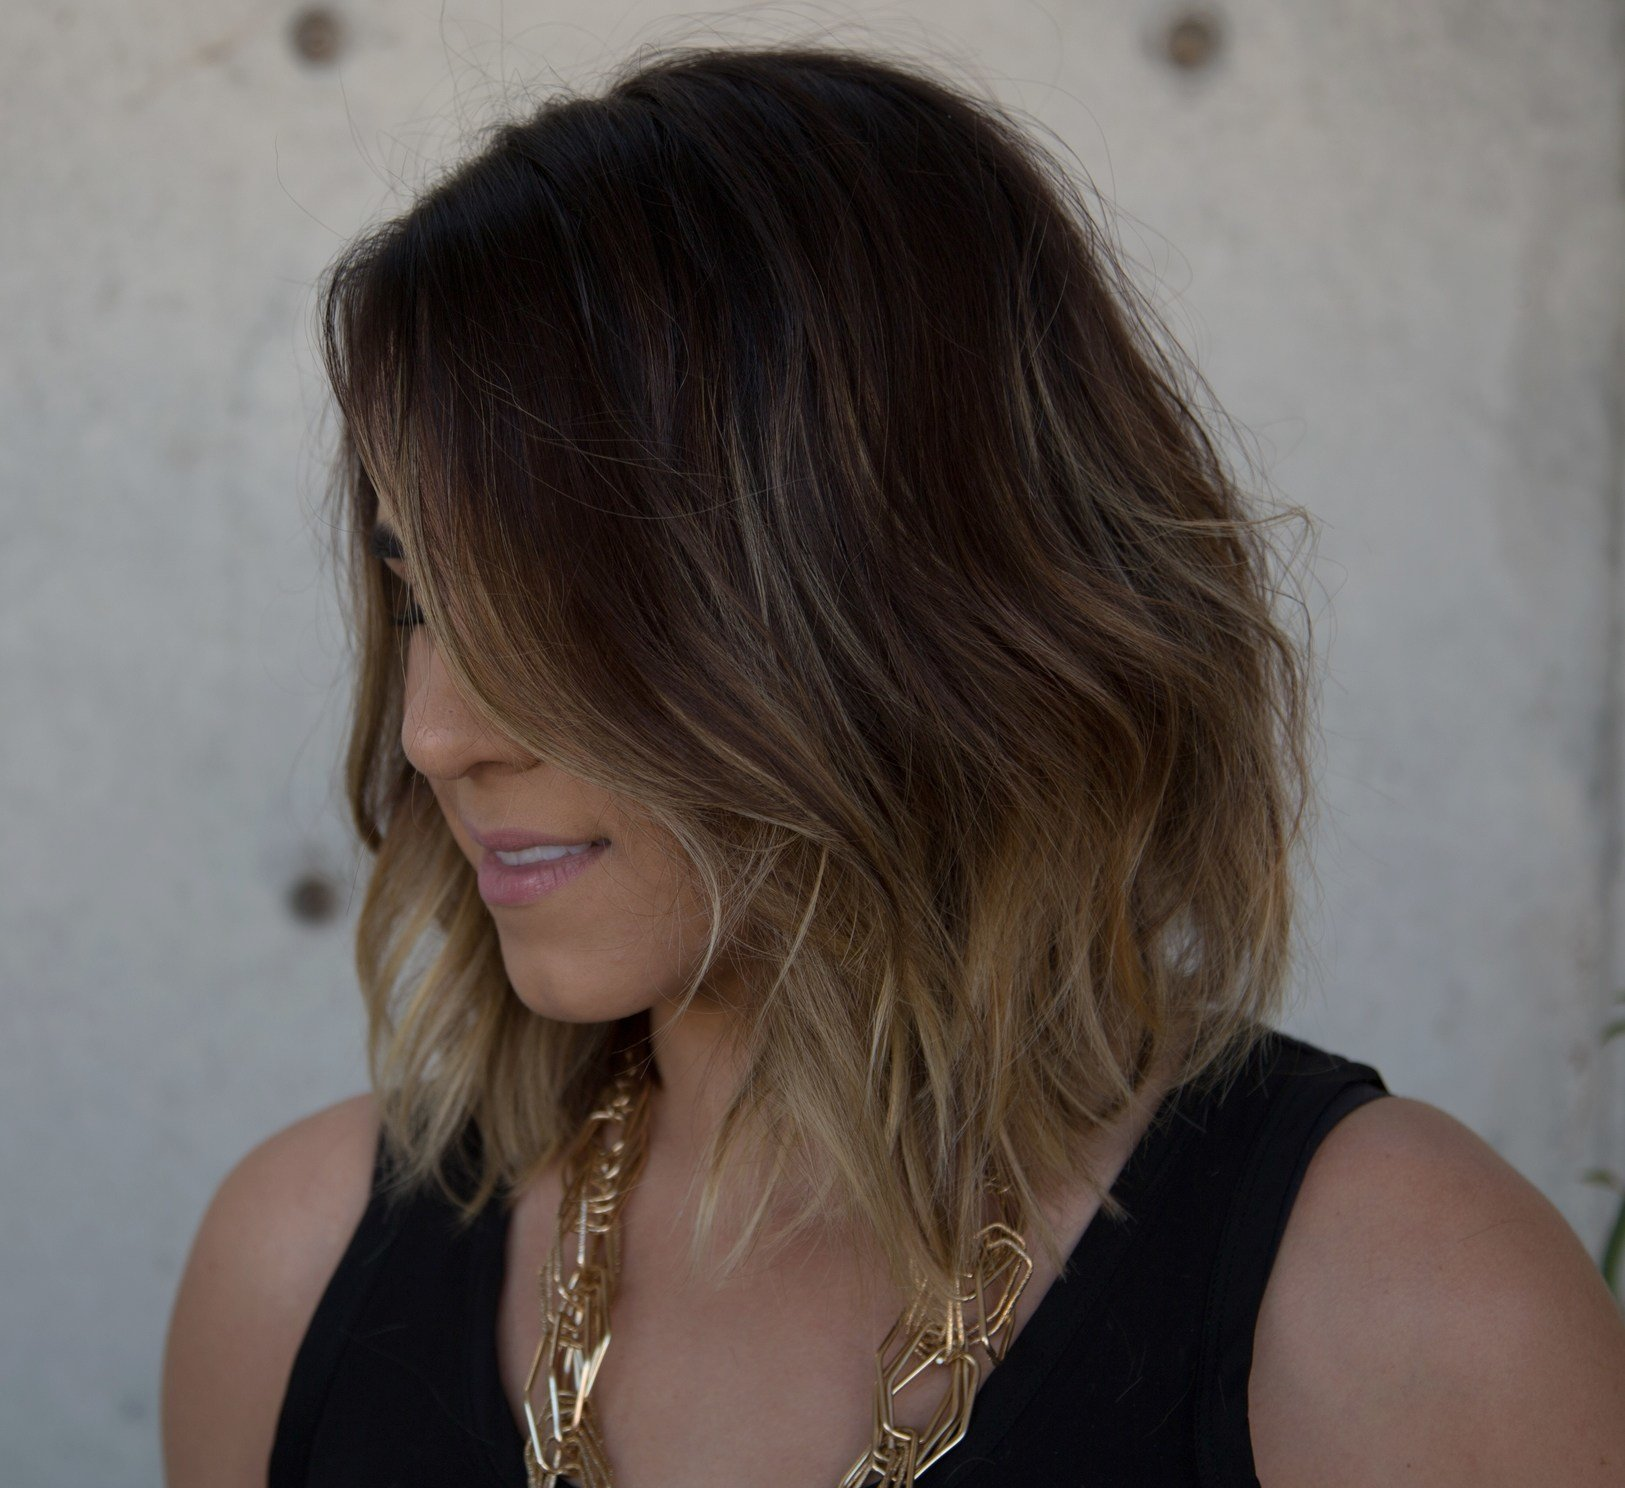 New Hair Cut Tutorial On The Long Bob — Confessions Of A Ideas With Pictures